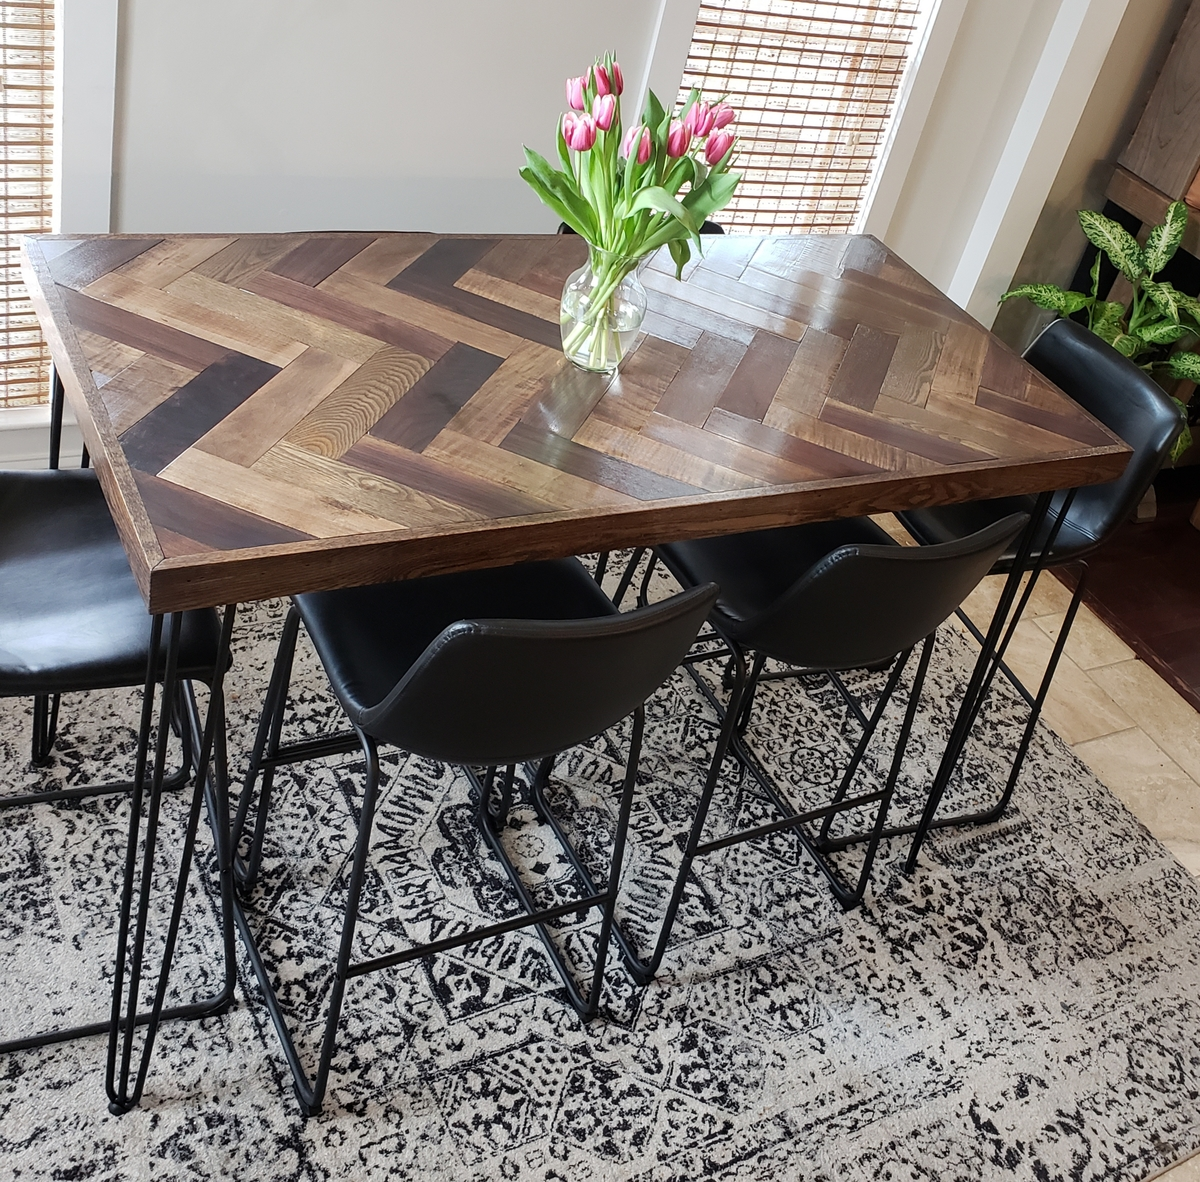 Ana White Herringbone Bar Height Dining Table With